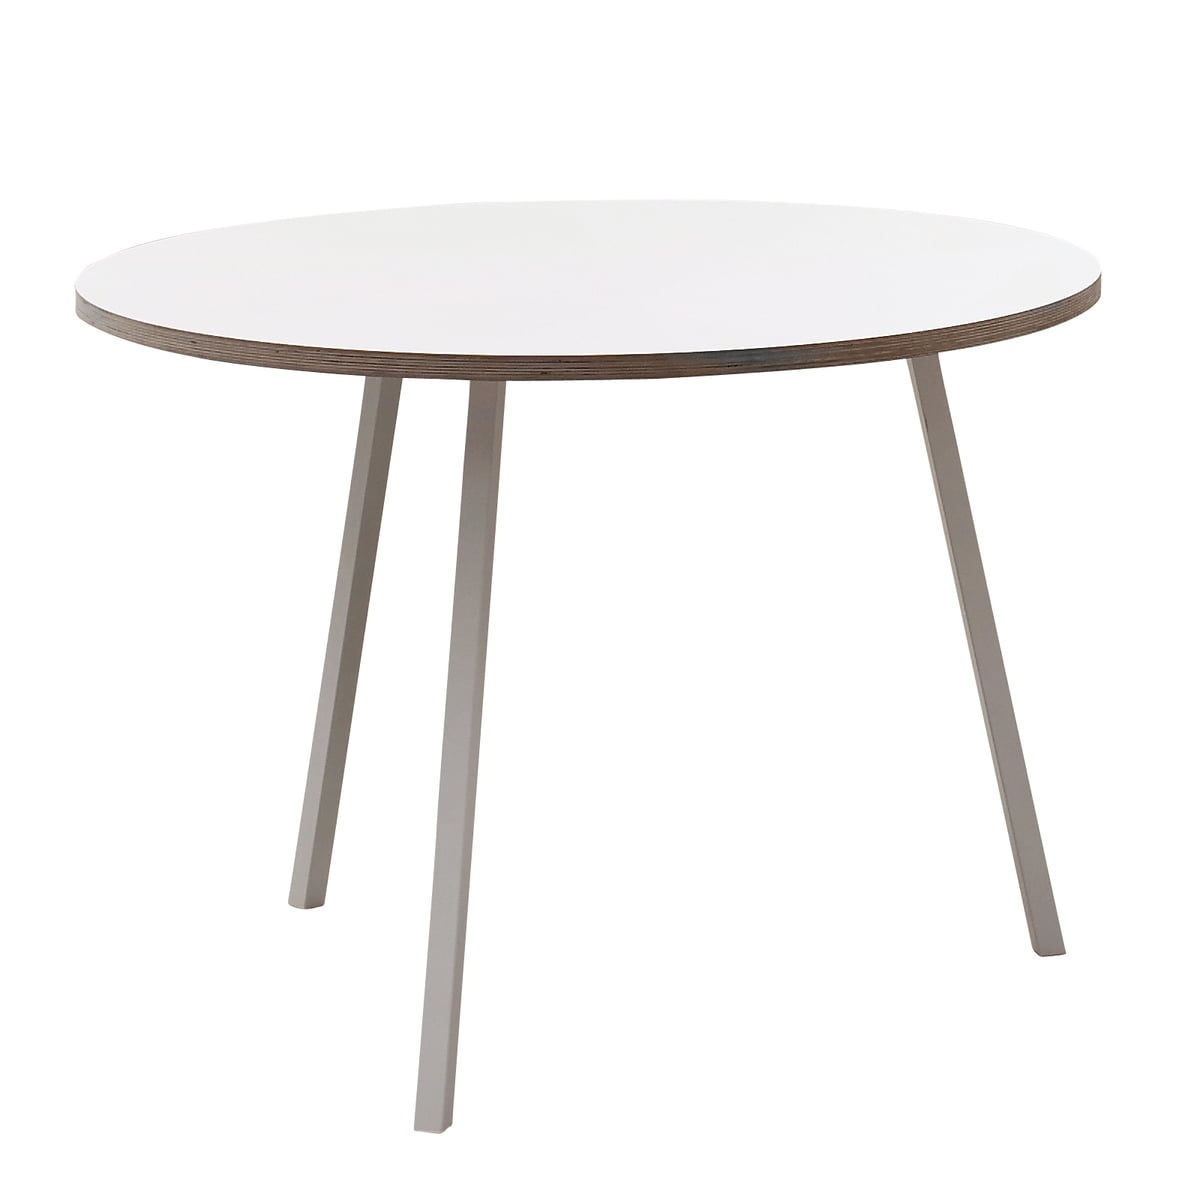 the round loop stand table by hay in the shop